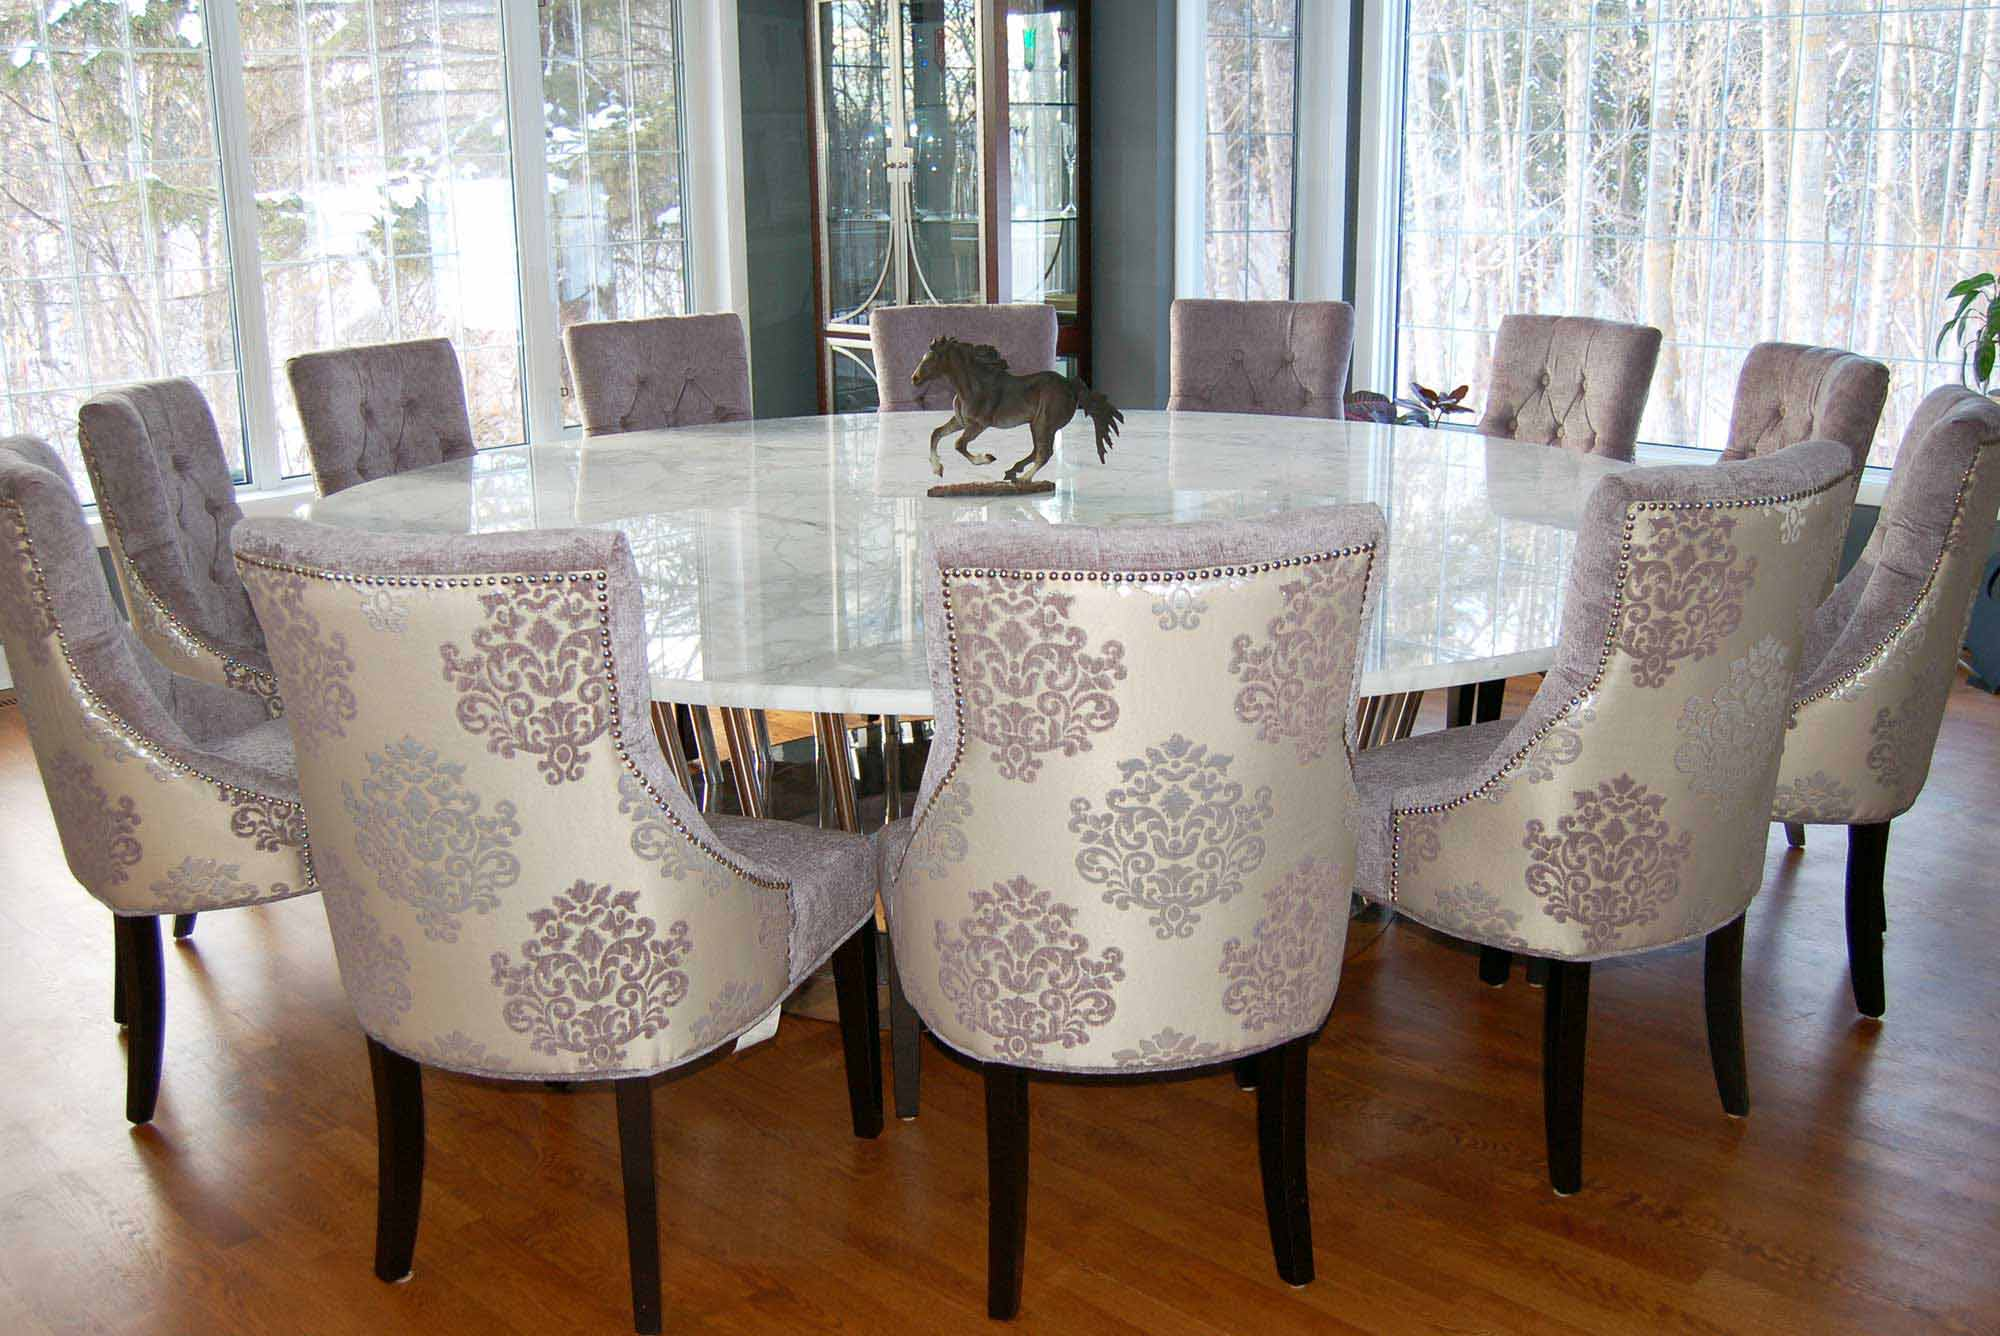 Rounded Dining Table With Marble Top Expensive And Elegant Chairs Wood Finishing Floor